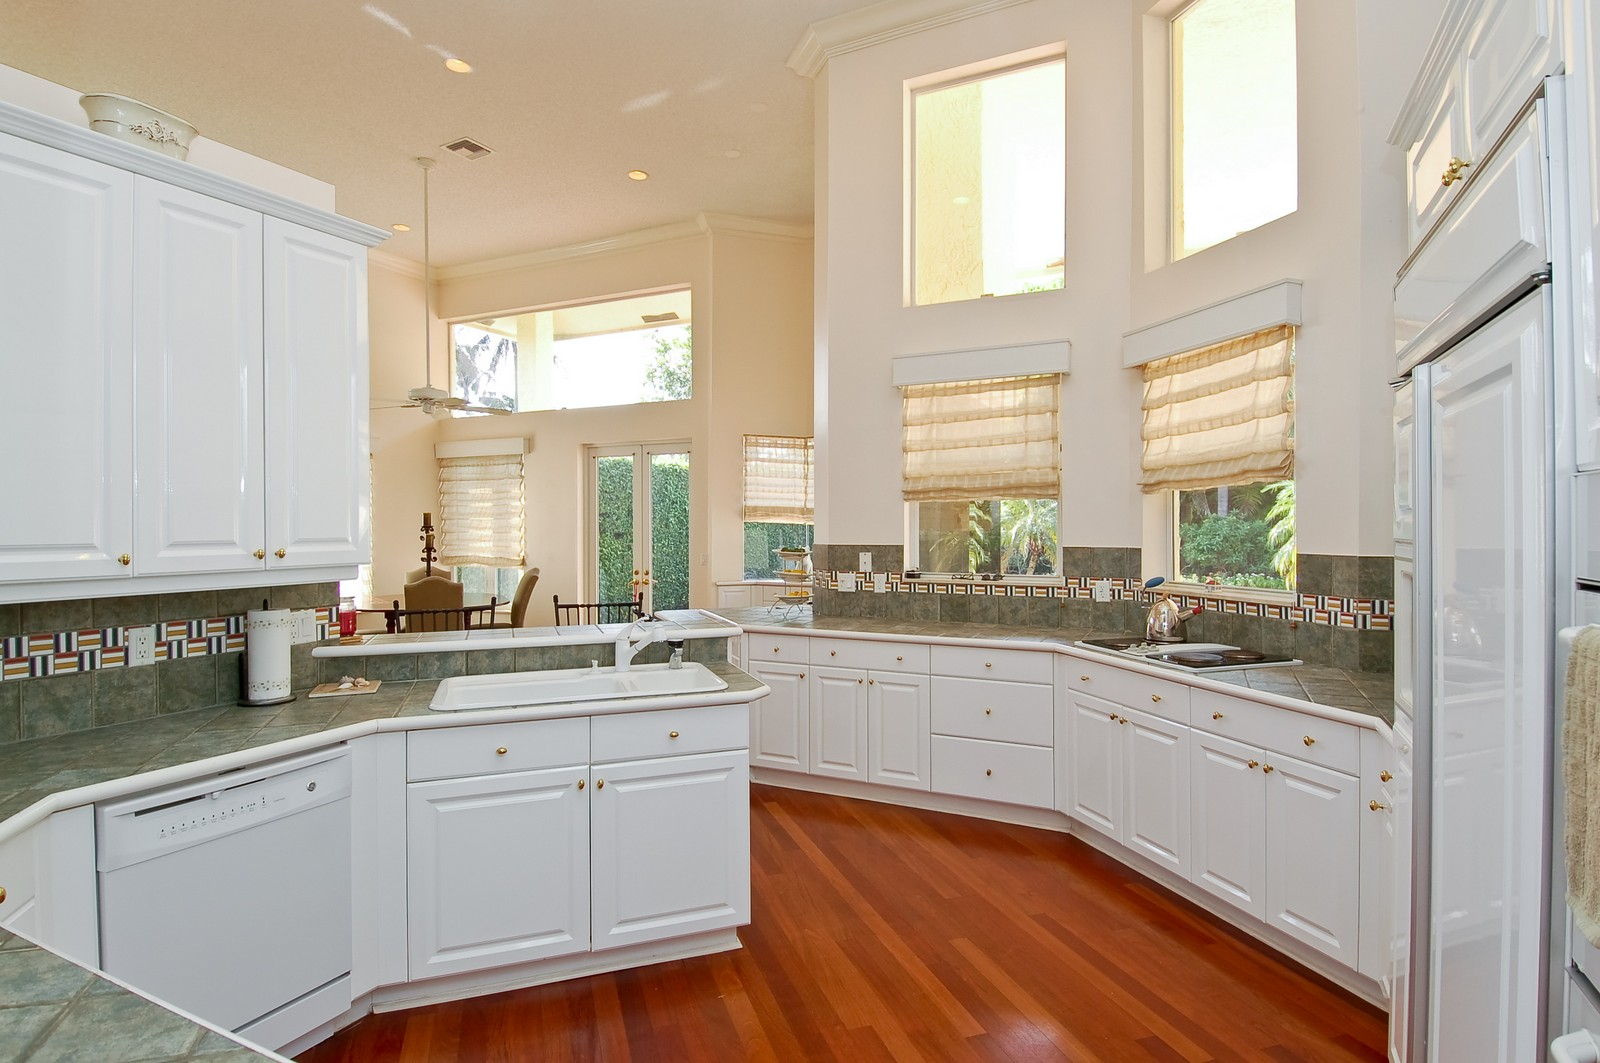 Real Estate Photography - 6329 NW 23rd Way, Boca Raton, FL, 33496 - Kitchen